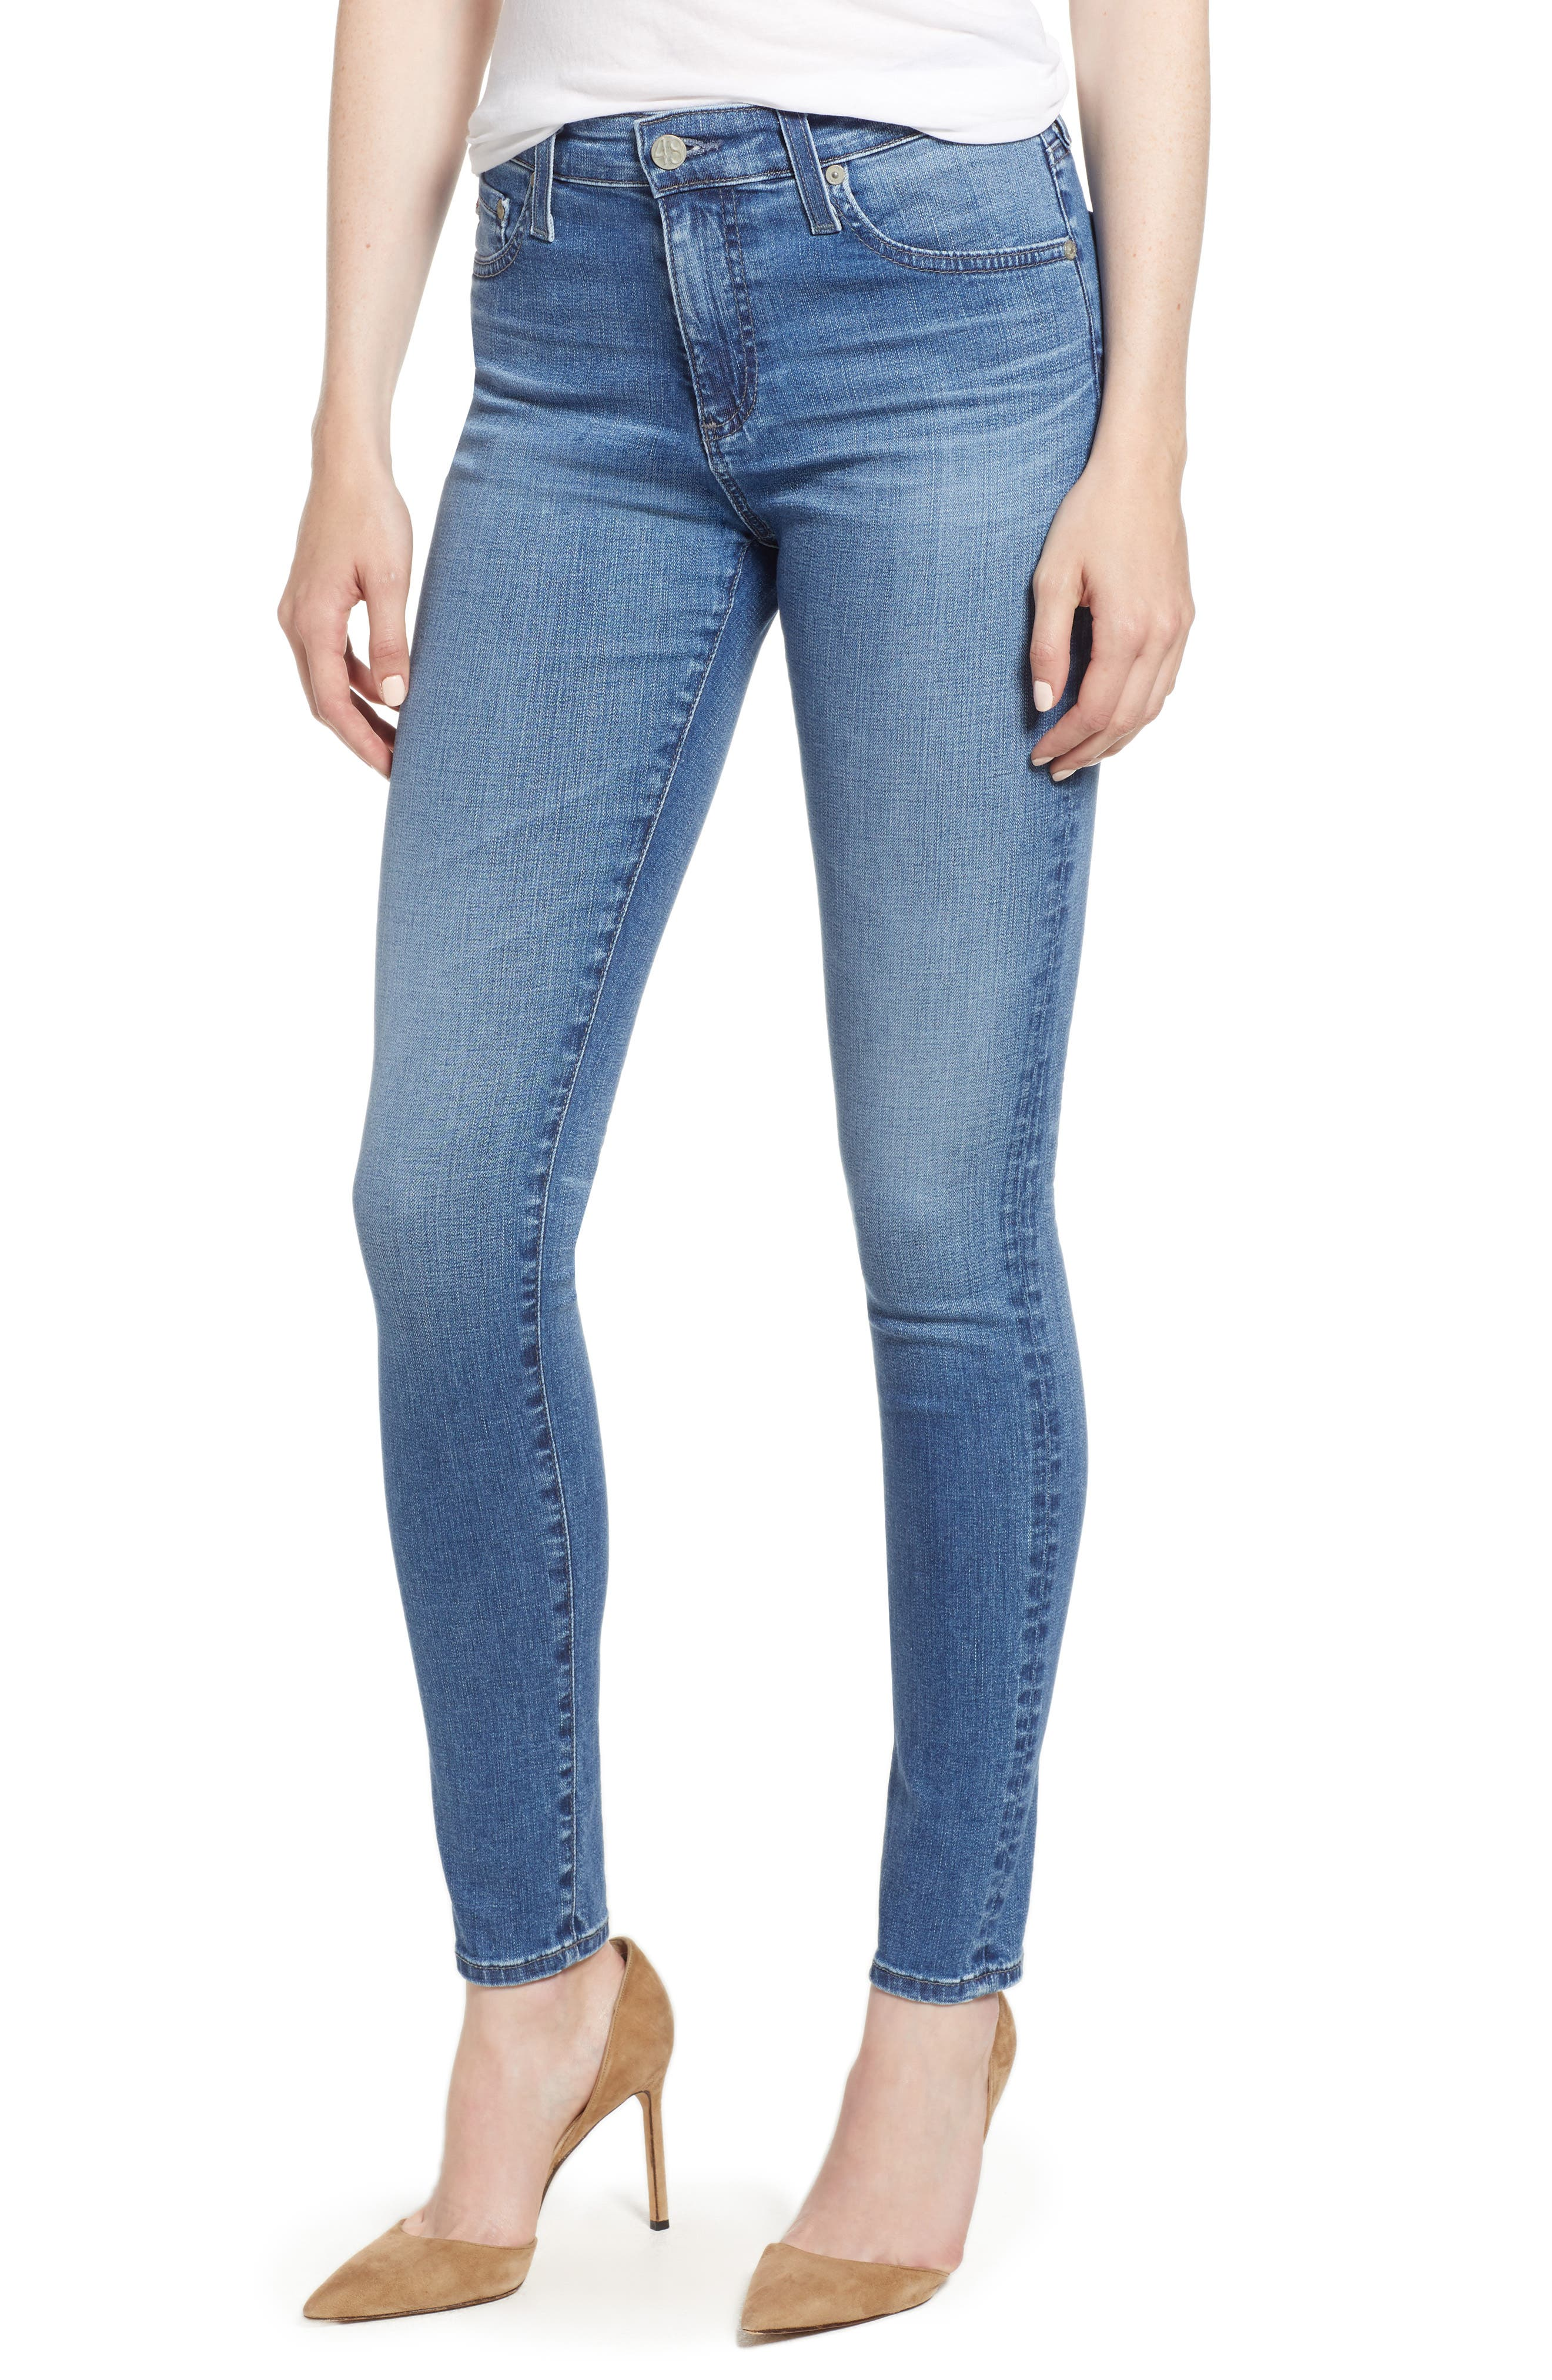 'The Farrah' High Rise Skinny Jeans,                         Main,                         color, 15 Years Chronic